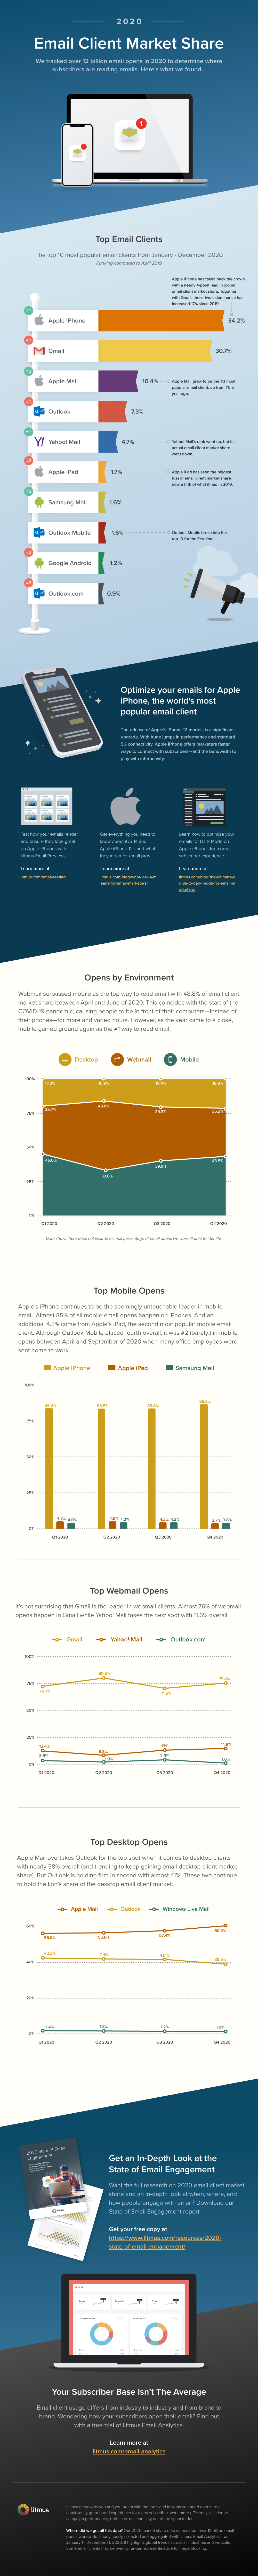 2020 email client market share infographic